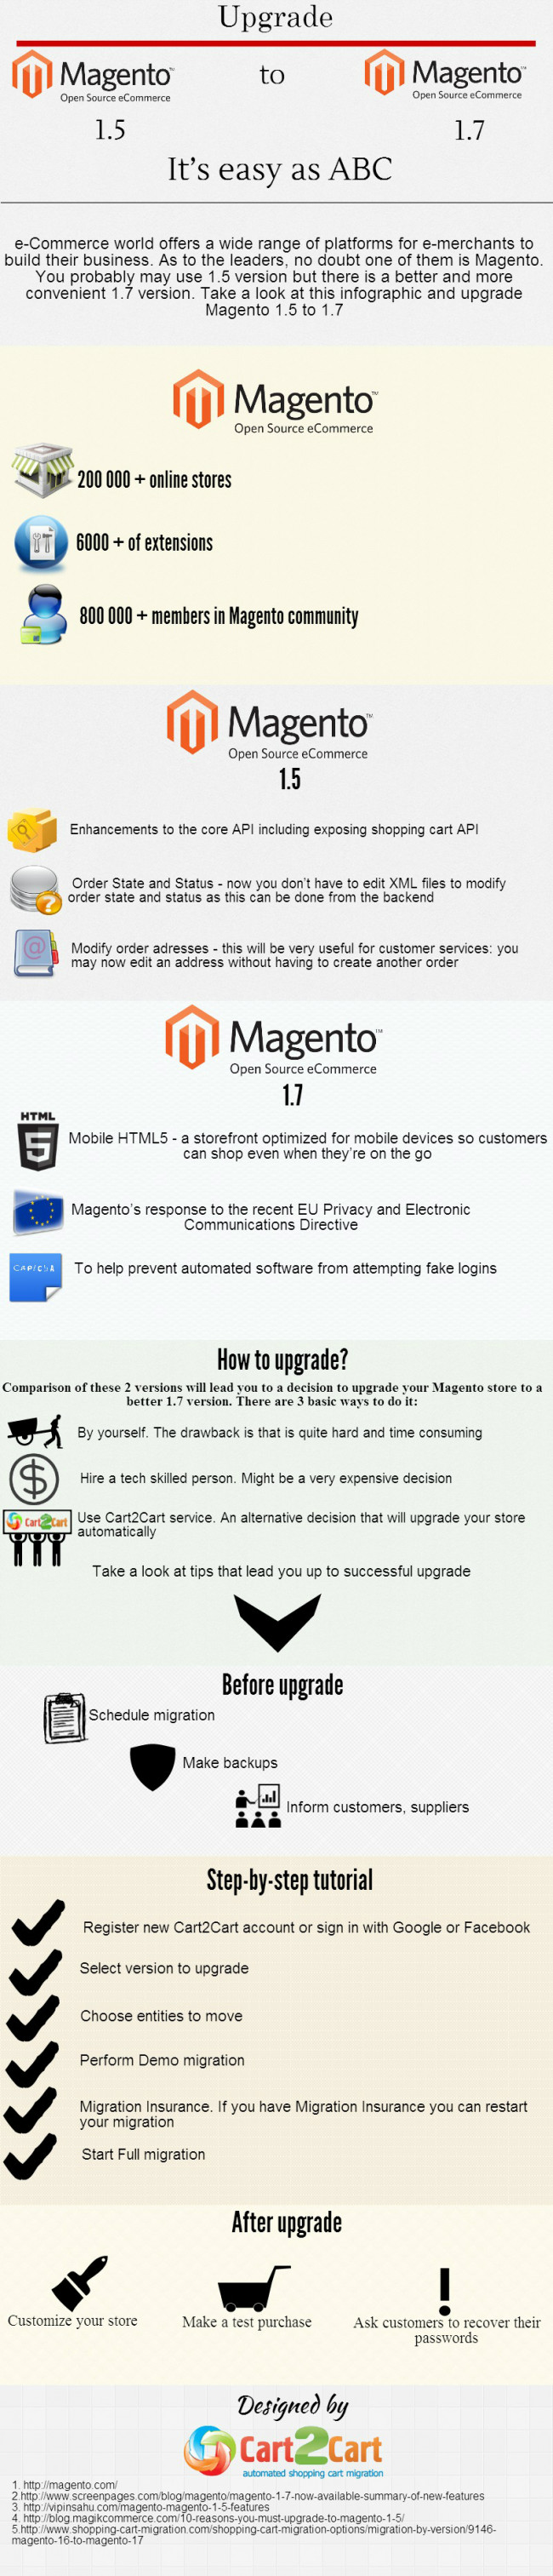 Upgrade Magento 1.5 to 1.7. It�s easy as ABC